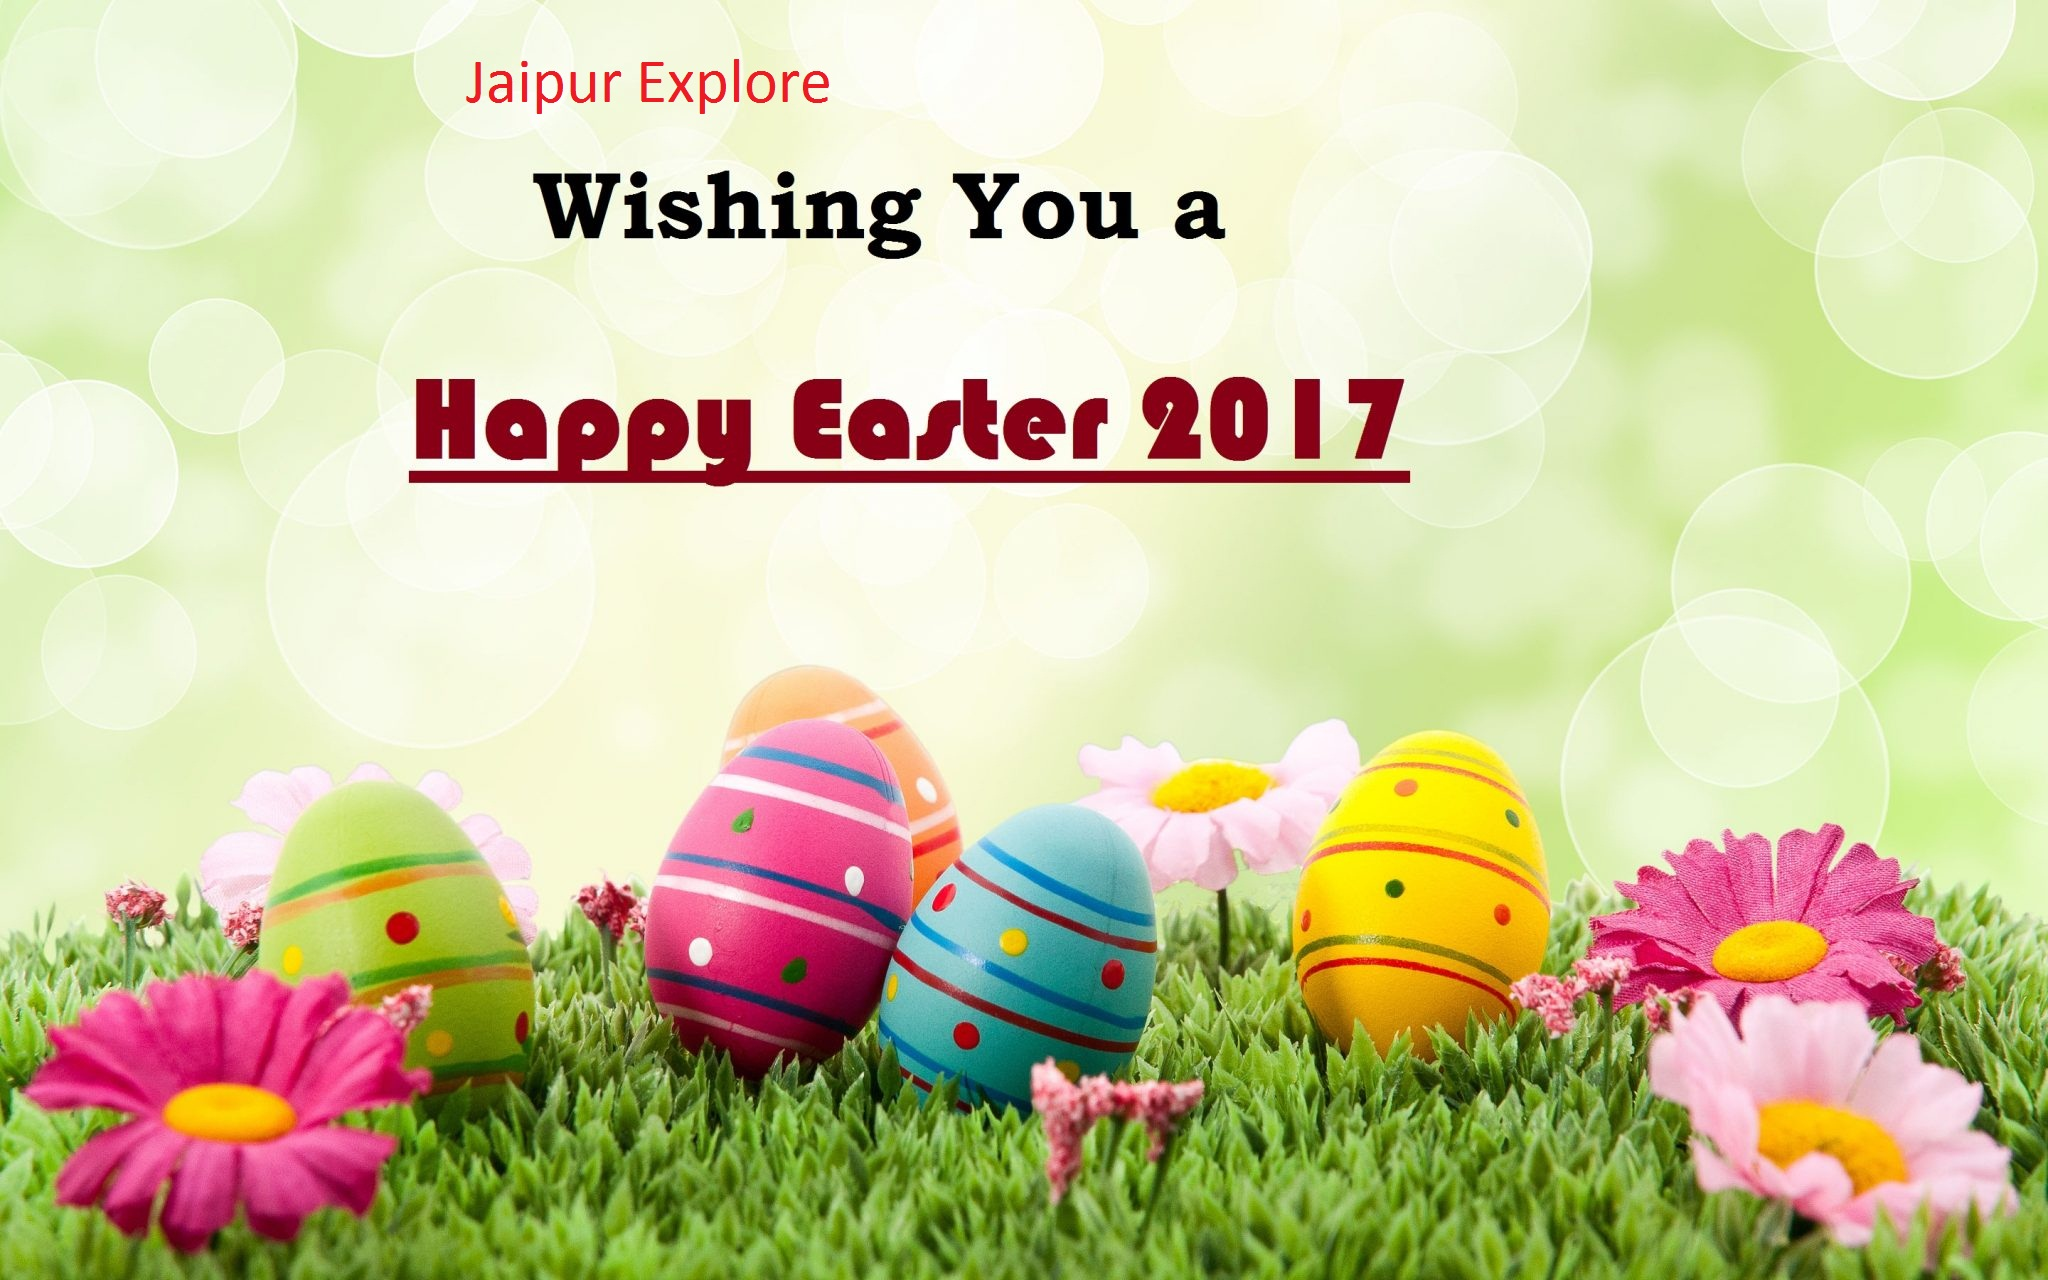 Happy easter sunday greetings 2017 jaipur explore happy easter sunday greetings 2017 m4hsunfo